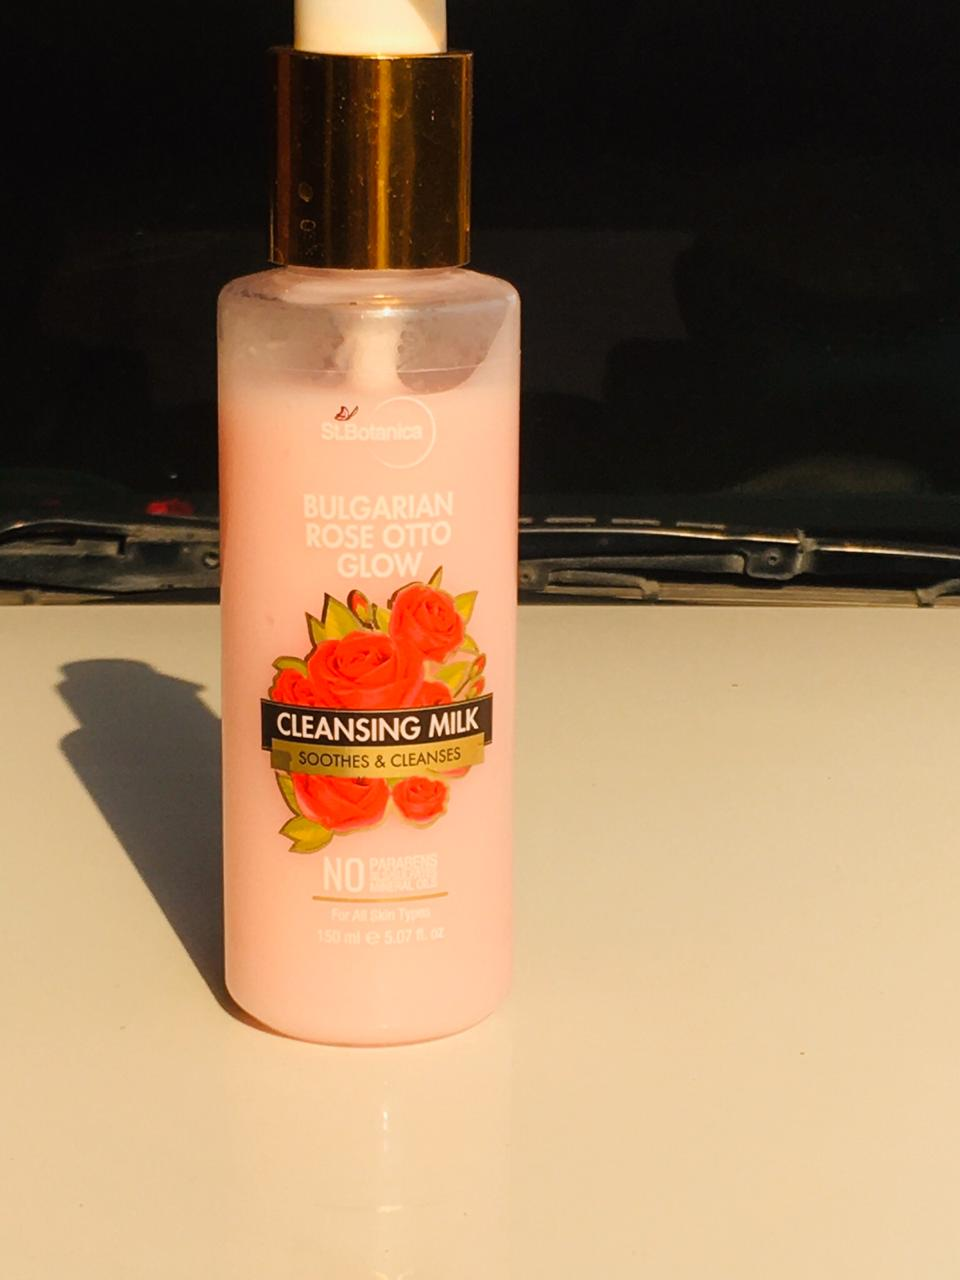 StBotanica Bulgarian Rose Otto Glow Cleansing Milk-Everyday cleanser-By mehak07